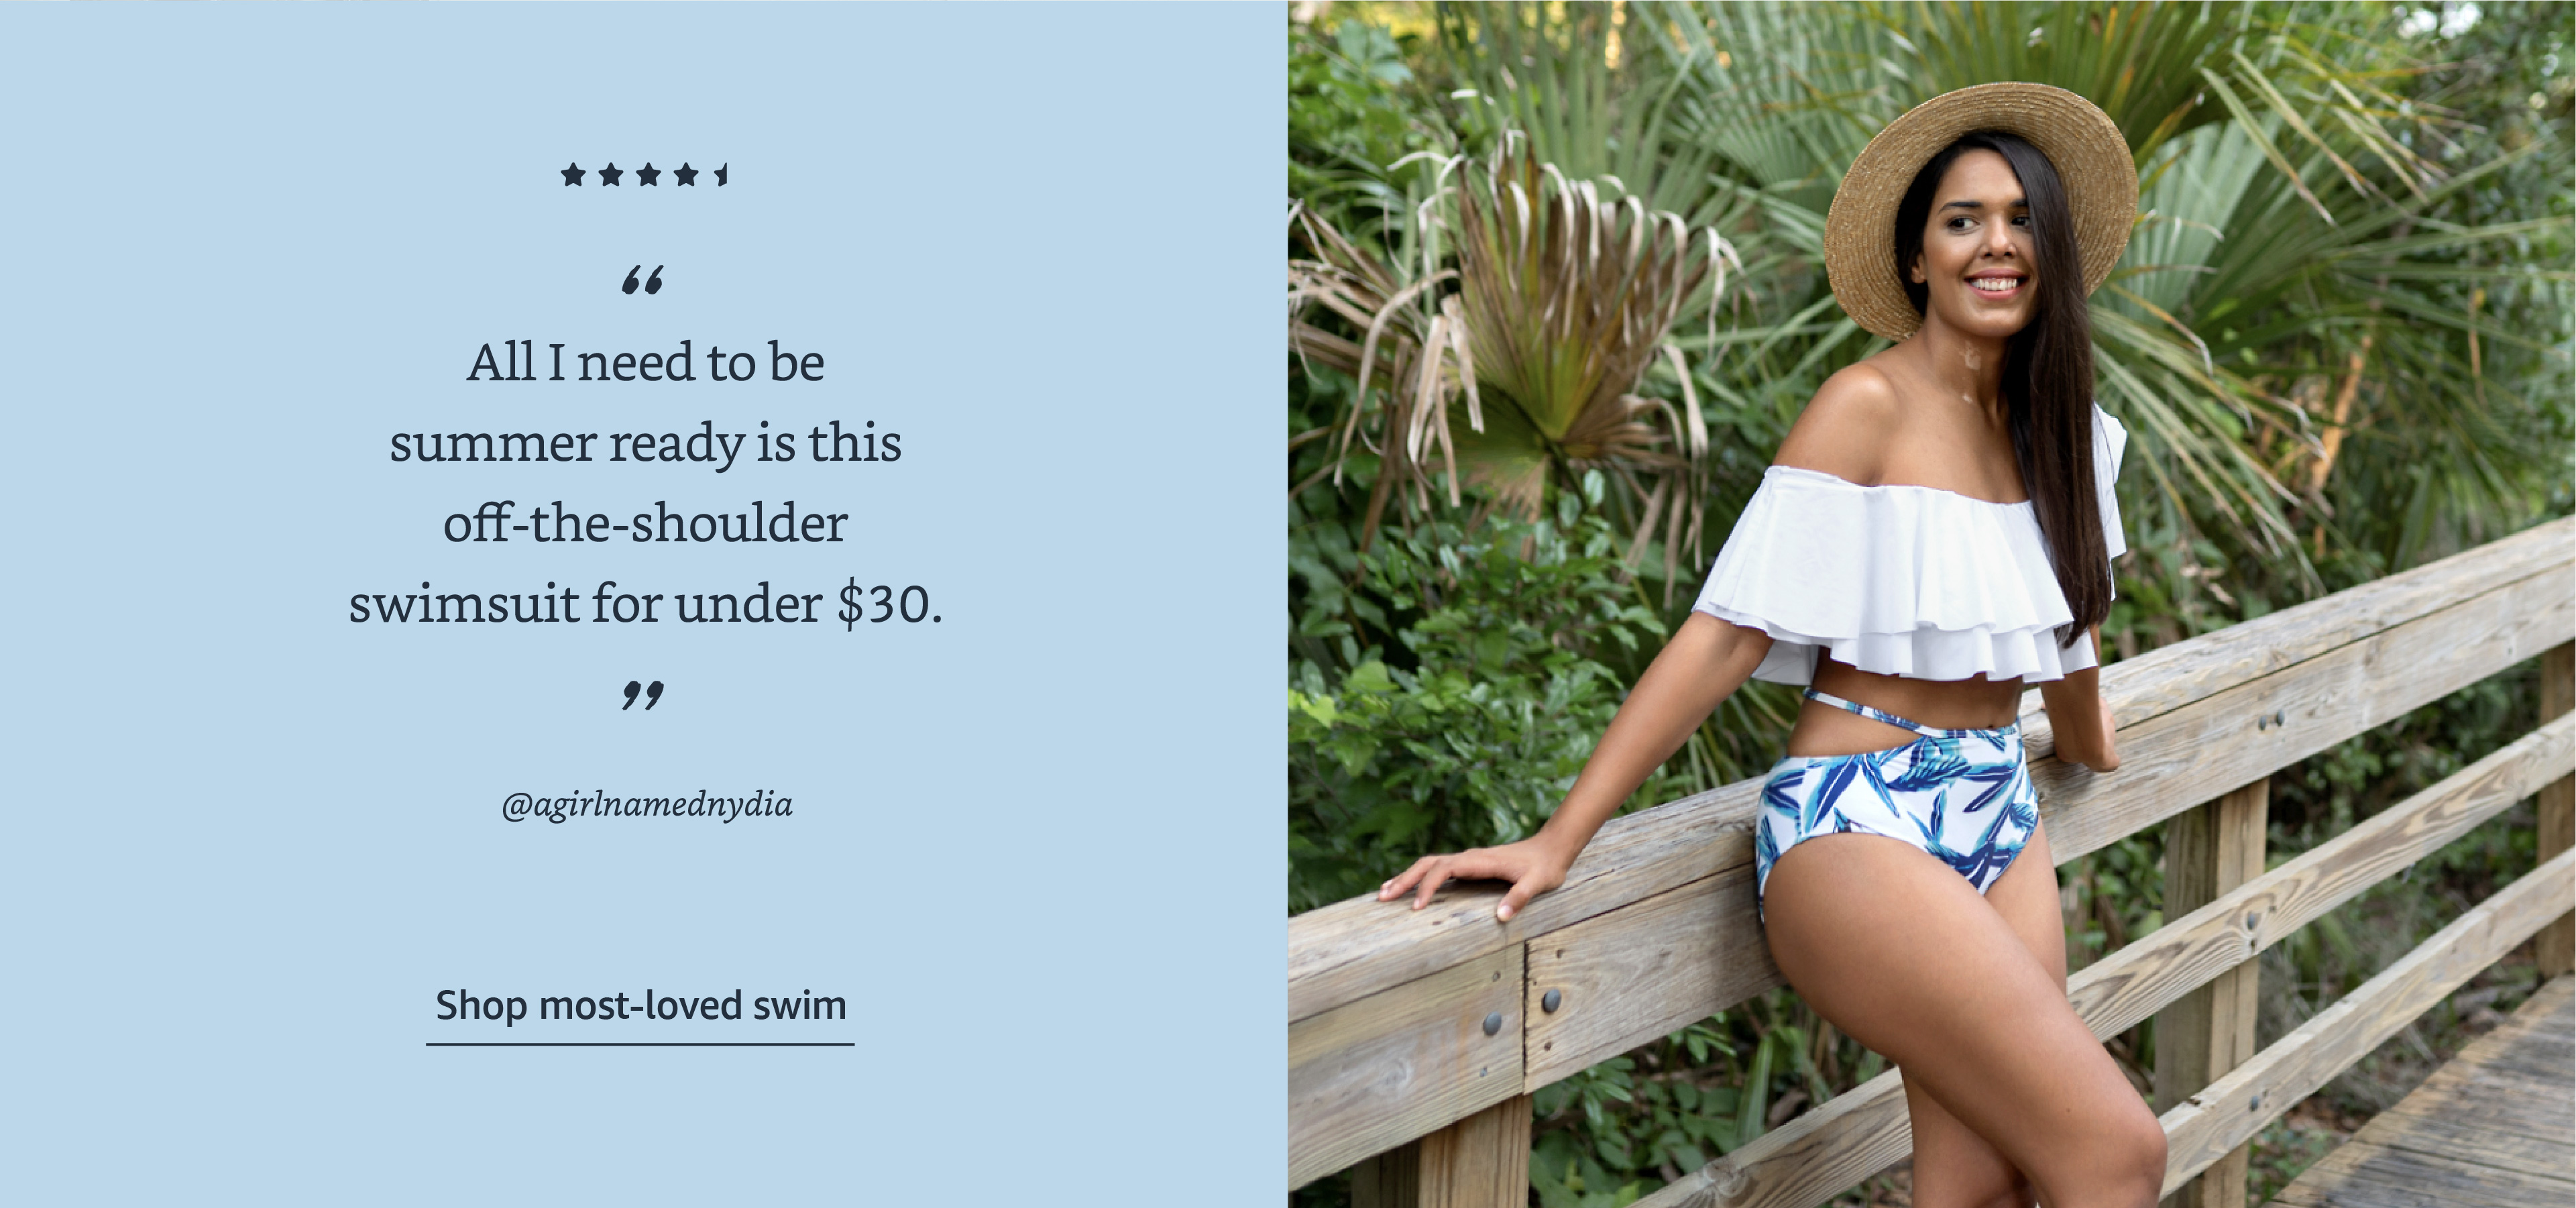 All I need to be summer ready is this off-the-shoulder swimsuit for under $30.